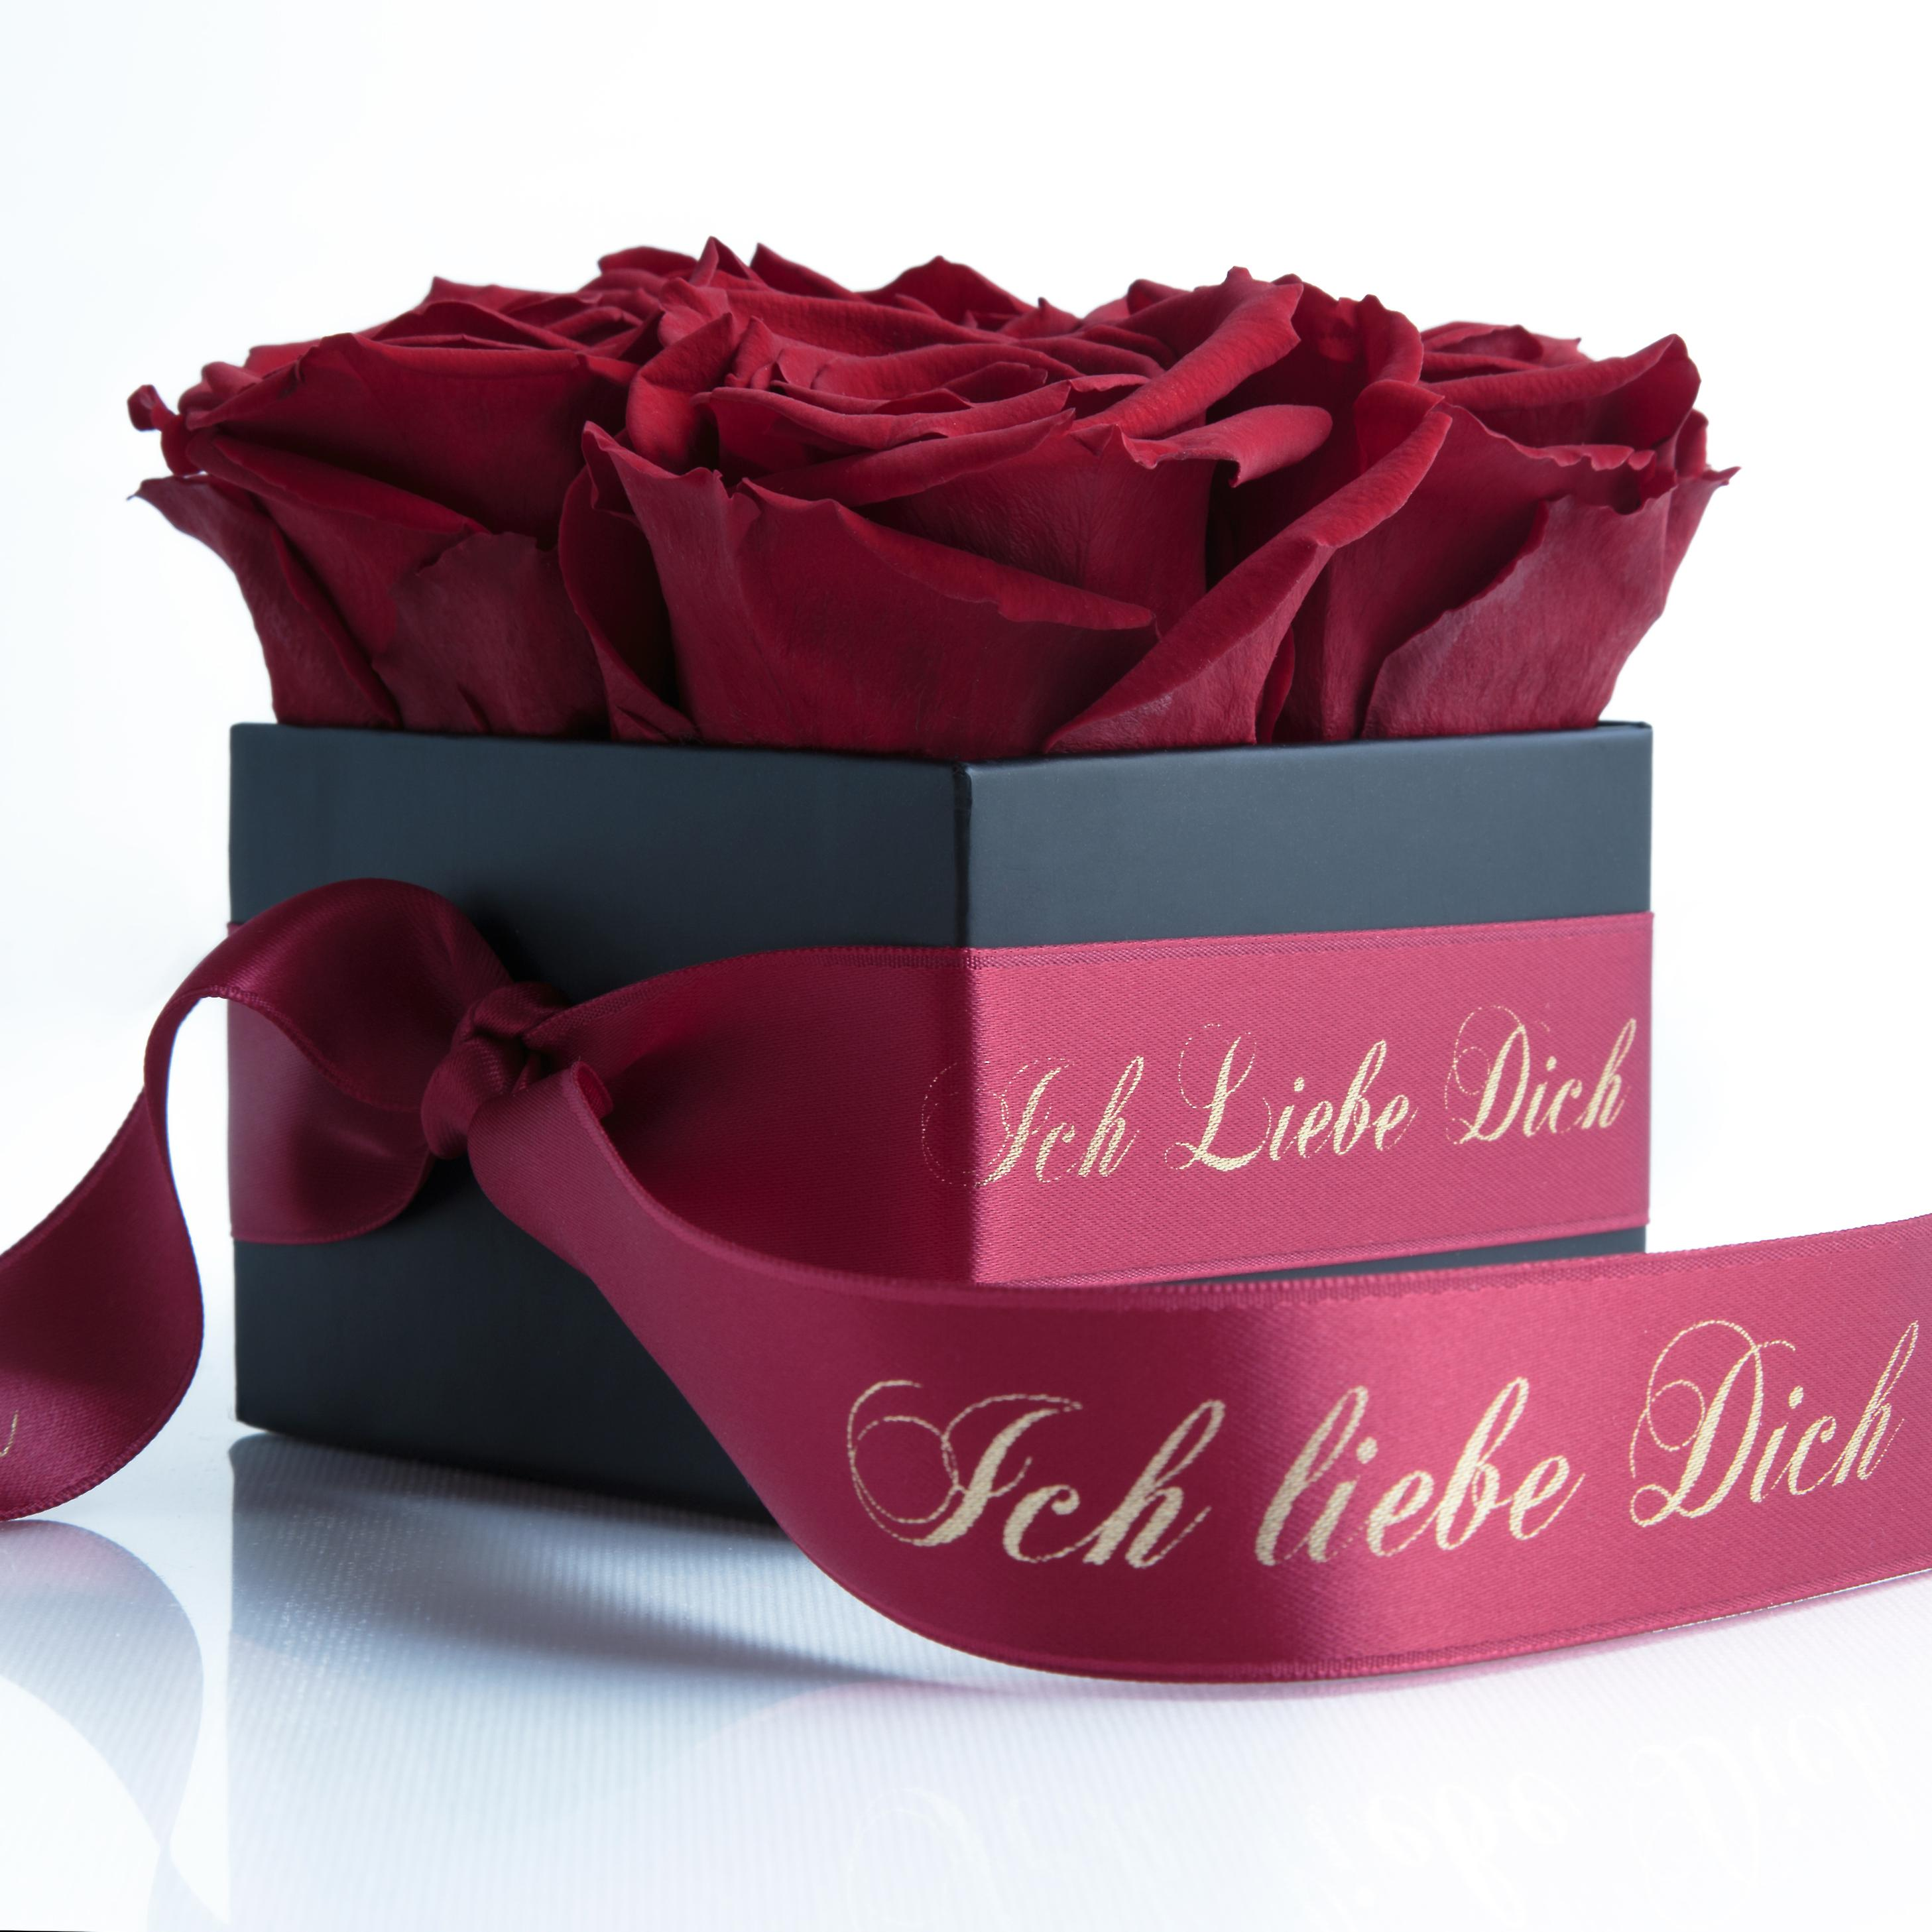 I love you box with 4 preserved roses dark red and satin band stable three years